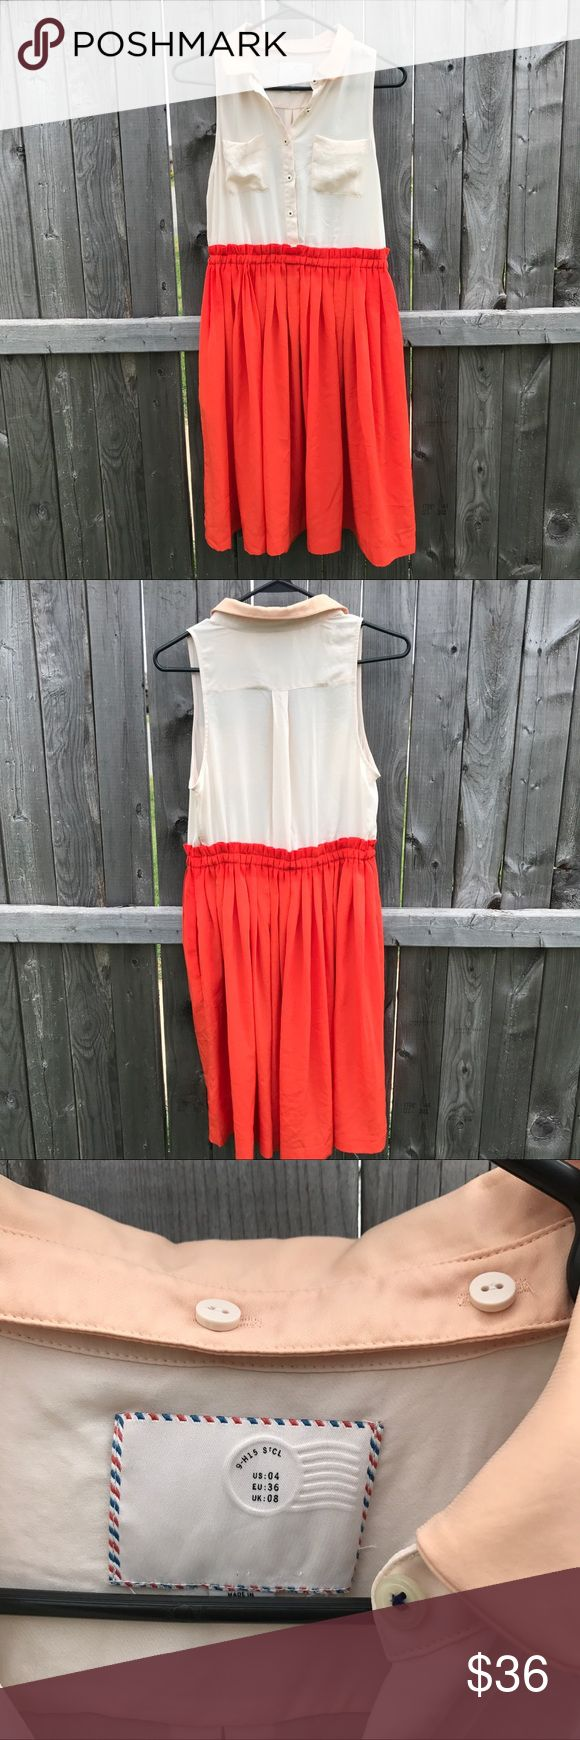 """Postmark Color Block Shirt Dress. Size 4 Orange skirt with cream top and muted pink collar. Button front. Removable collar. Polyester. Machine wash shirt dress from Anthropologie. There is a small stain on the front right pocket and a small run in the back neither are noticeable unless you are specifically looking for them. 18"""" across from armpit to armpit. Waist stretches up to 17"""" across. 28"""" inseam. Skirt is 22"""". This is perfect for the office or a night out! Anthropologie Dresses Mini"""